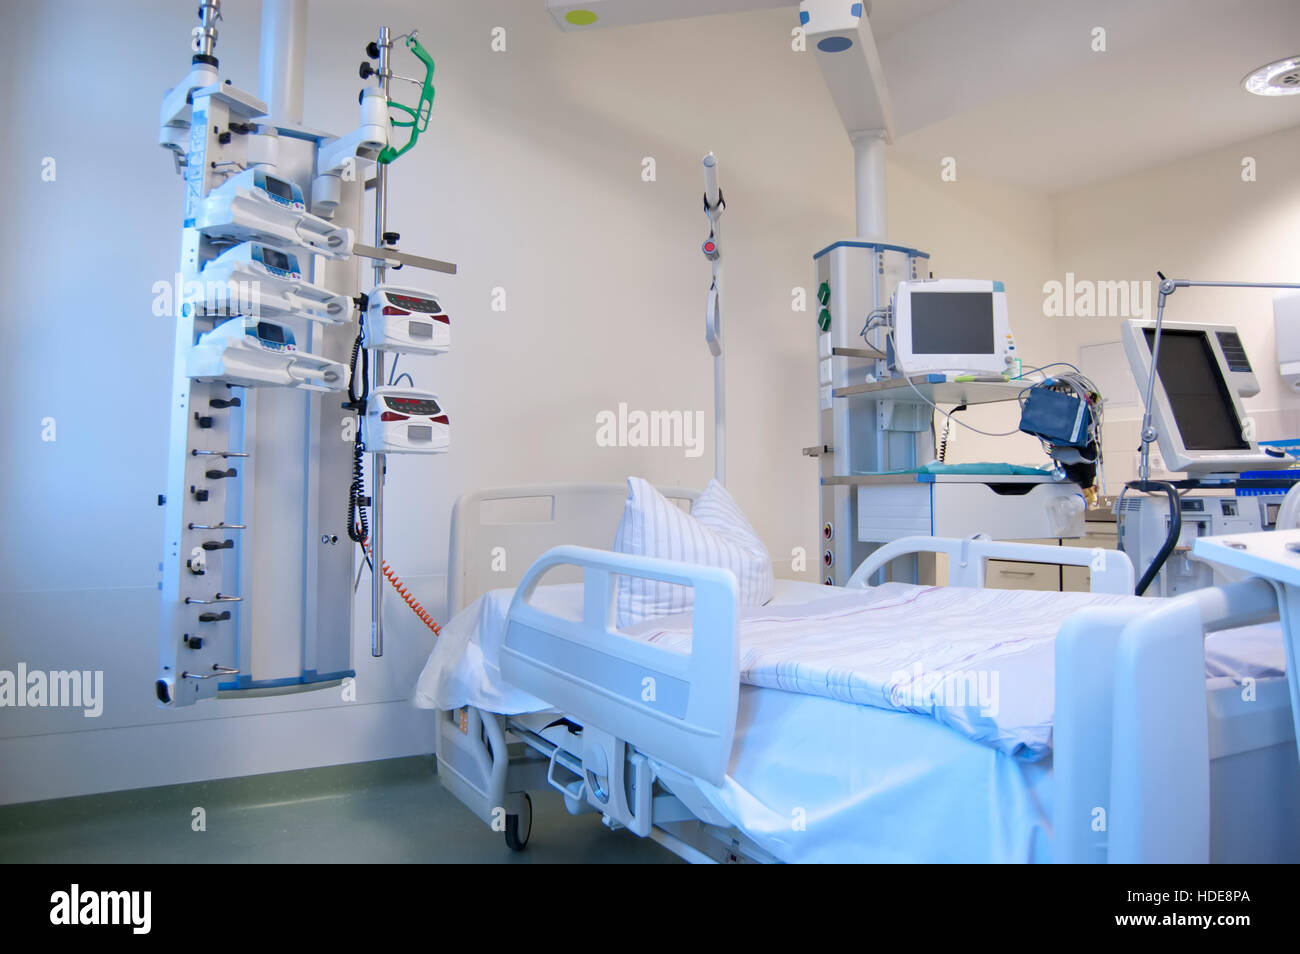 Intensive care unit and trauma care unit of a hospital's emergency department. - Stock Image